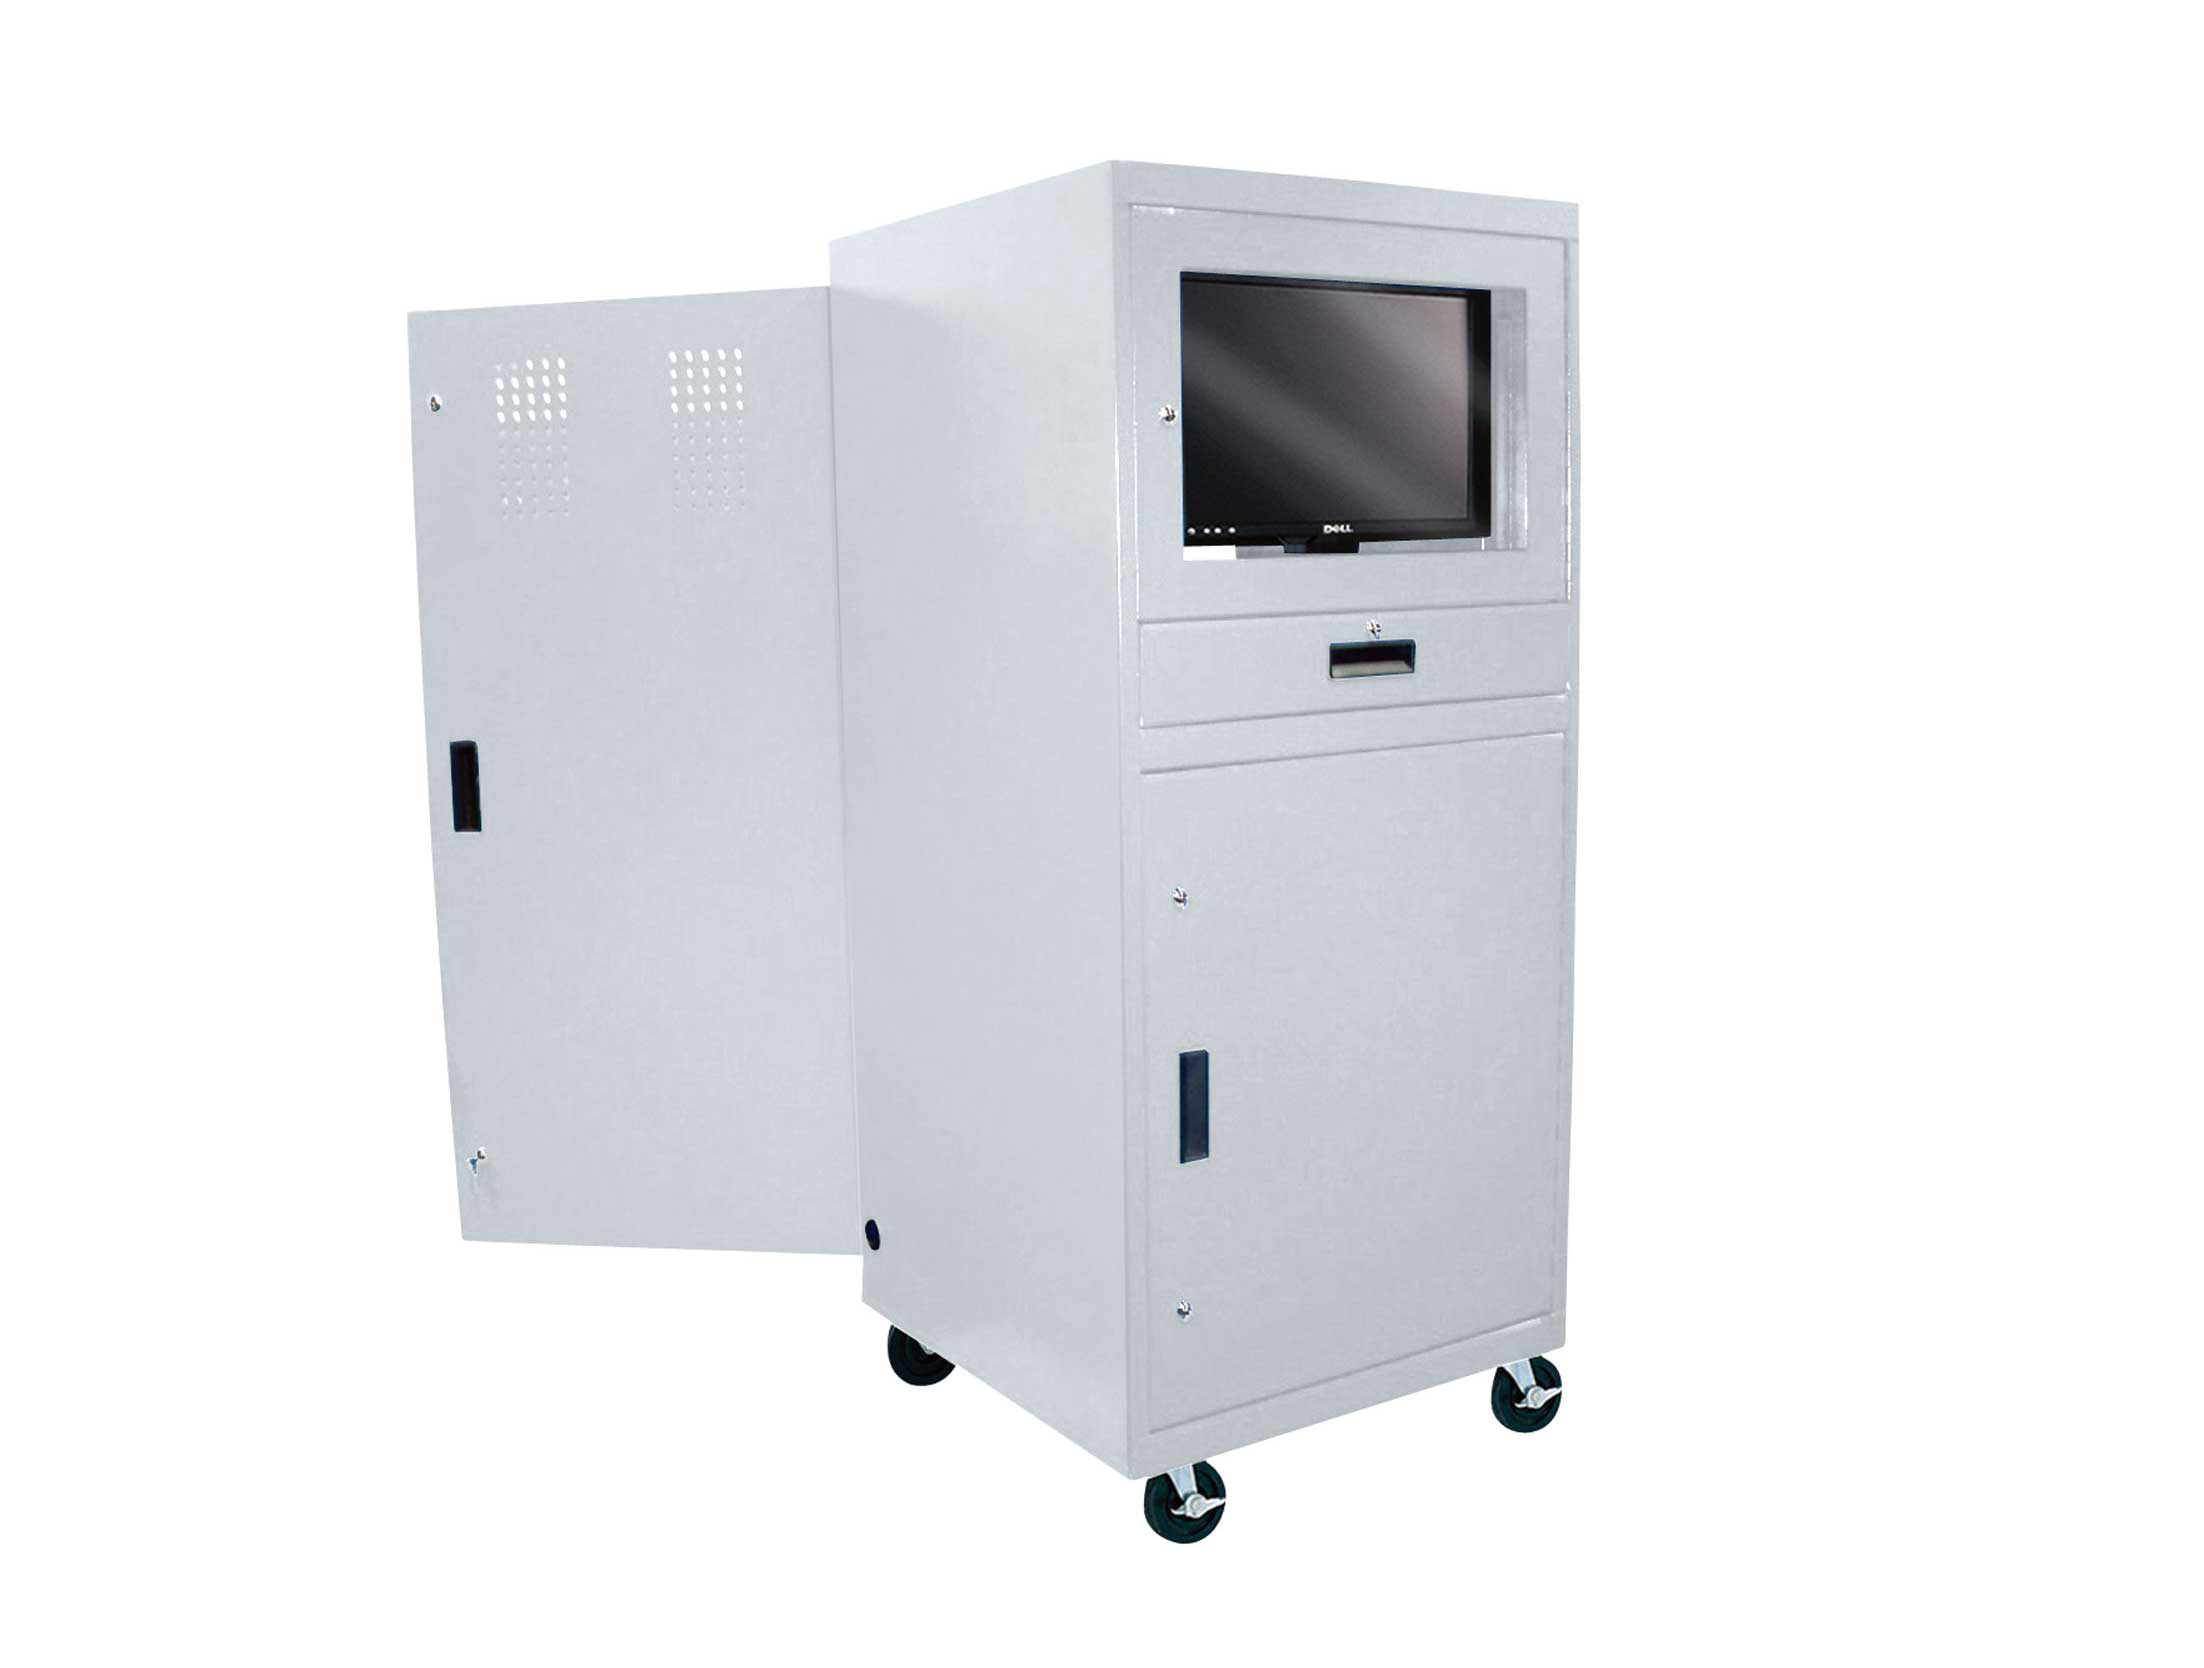 Mobile Computer Cabinet for Security and Mobility